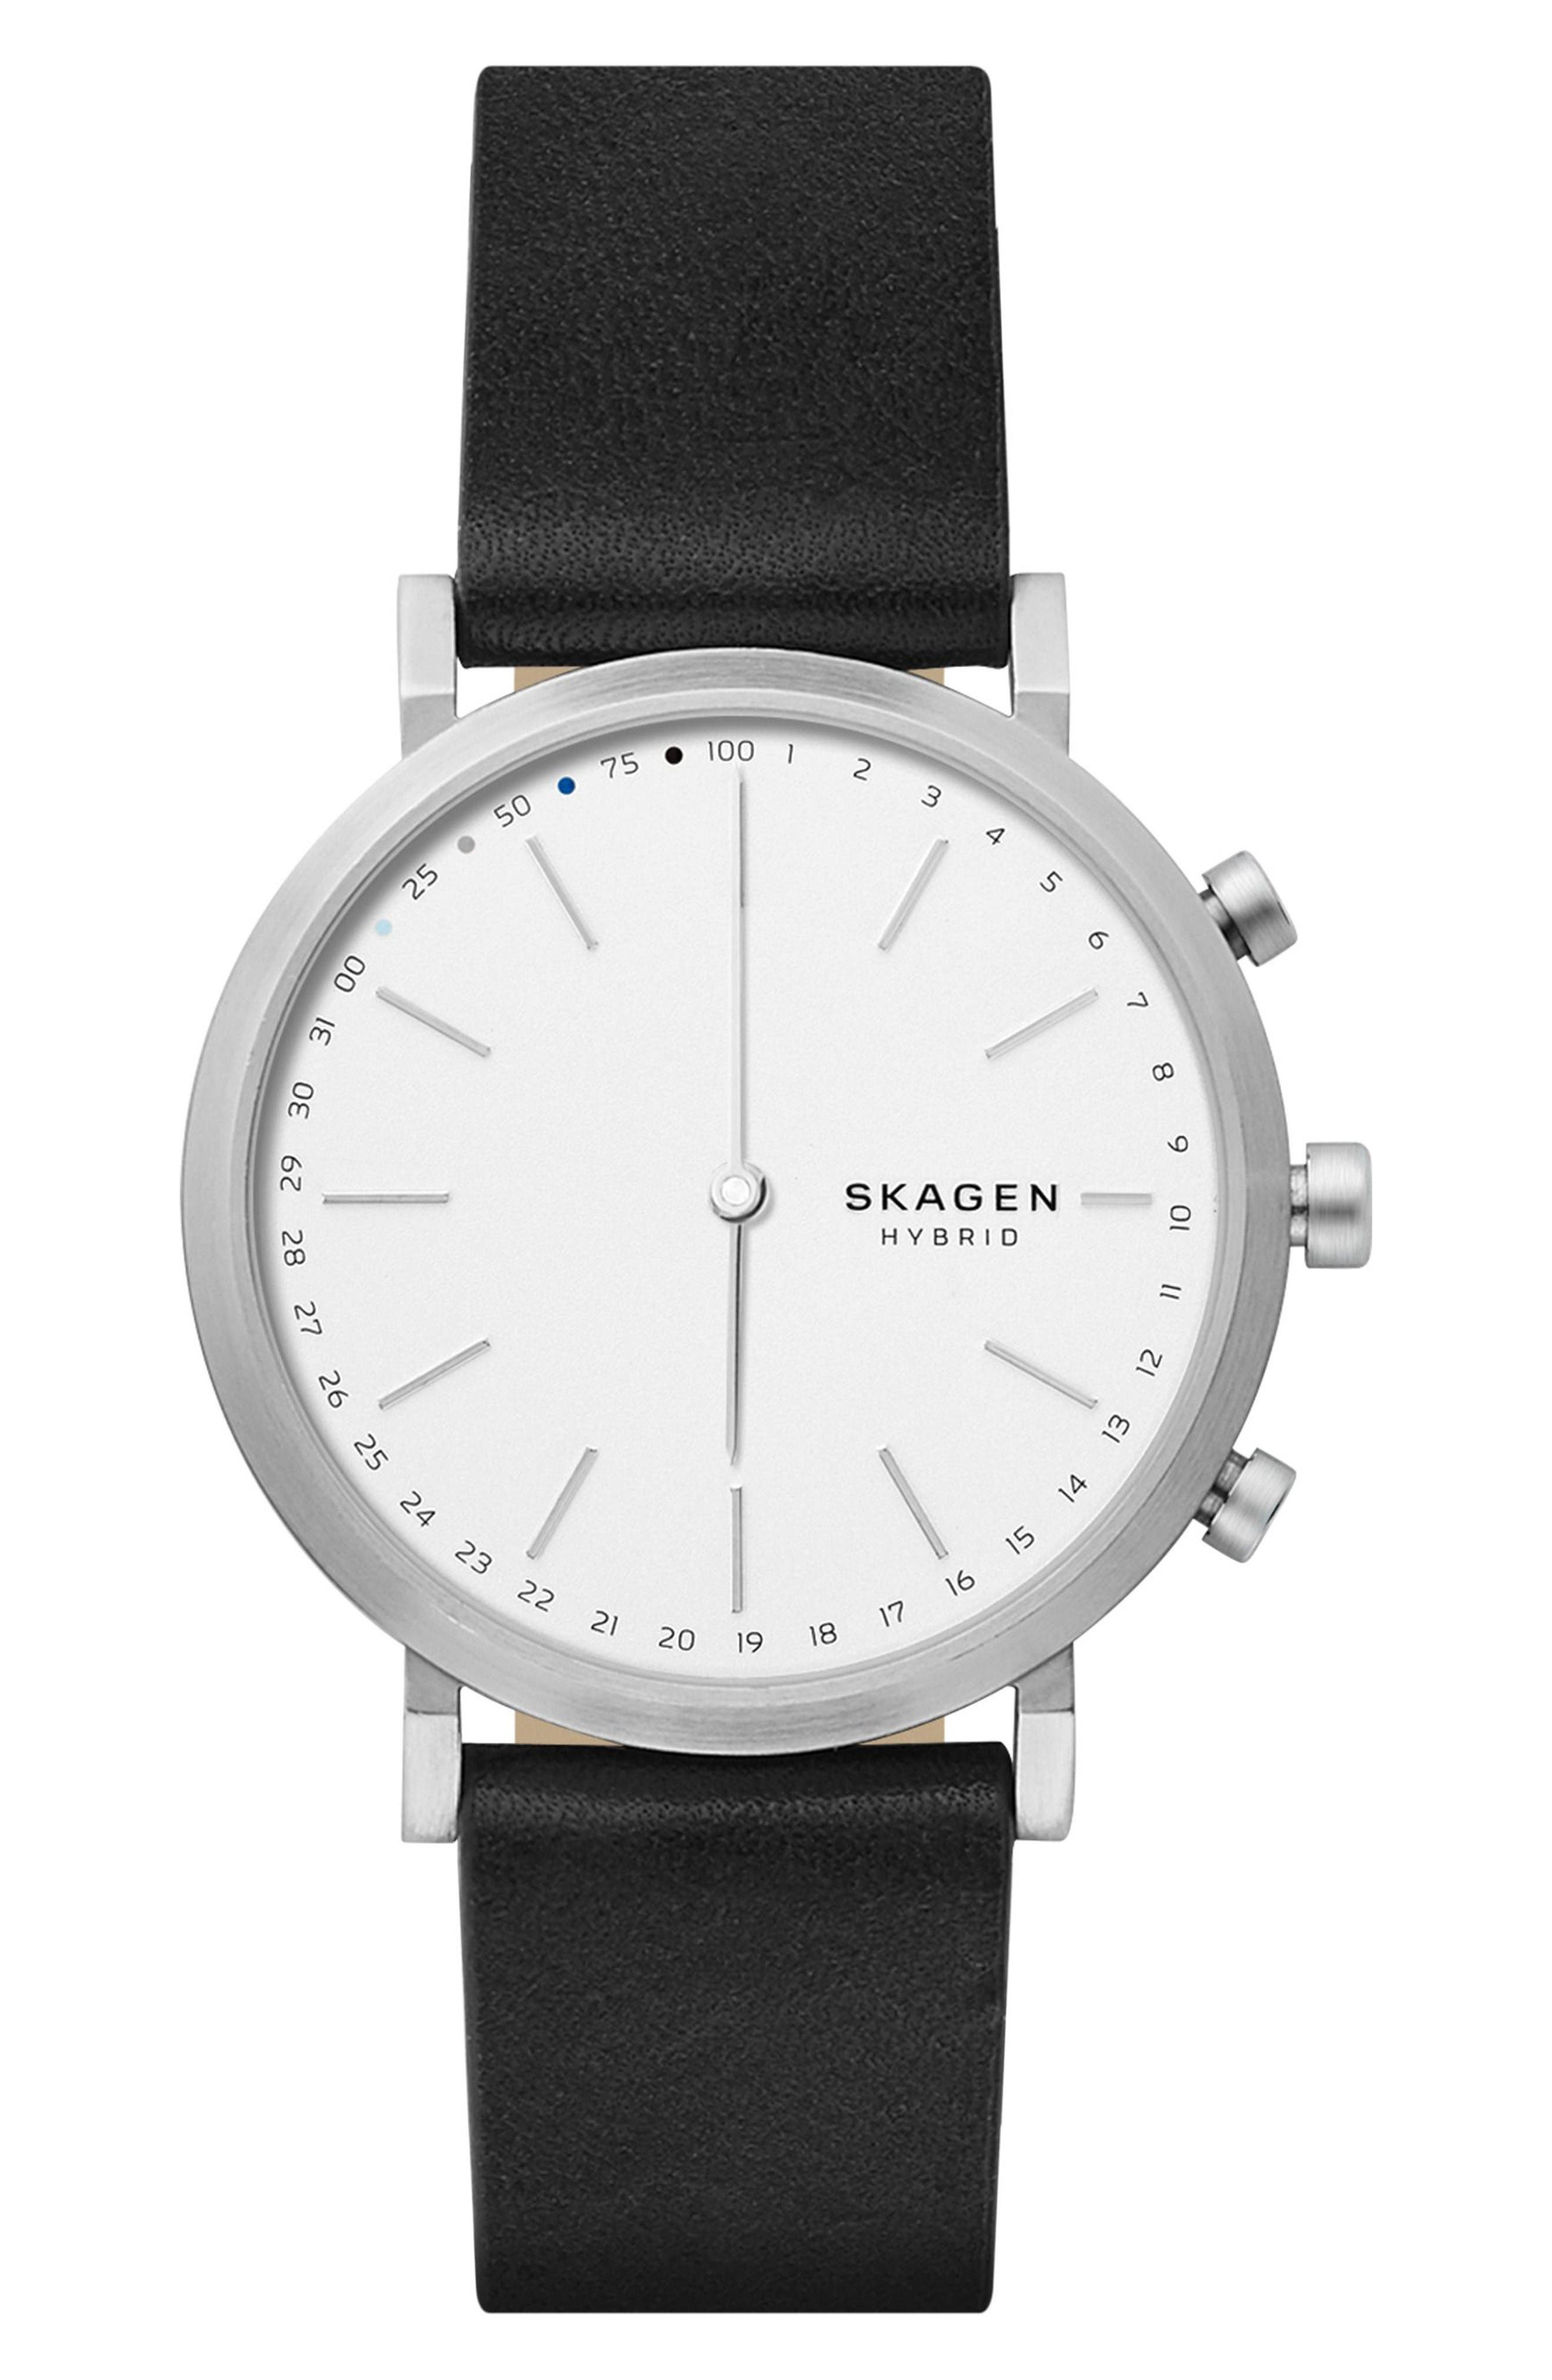 SKAGEN Hald Hybrid Leather Strap Smart Watch, 40mm